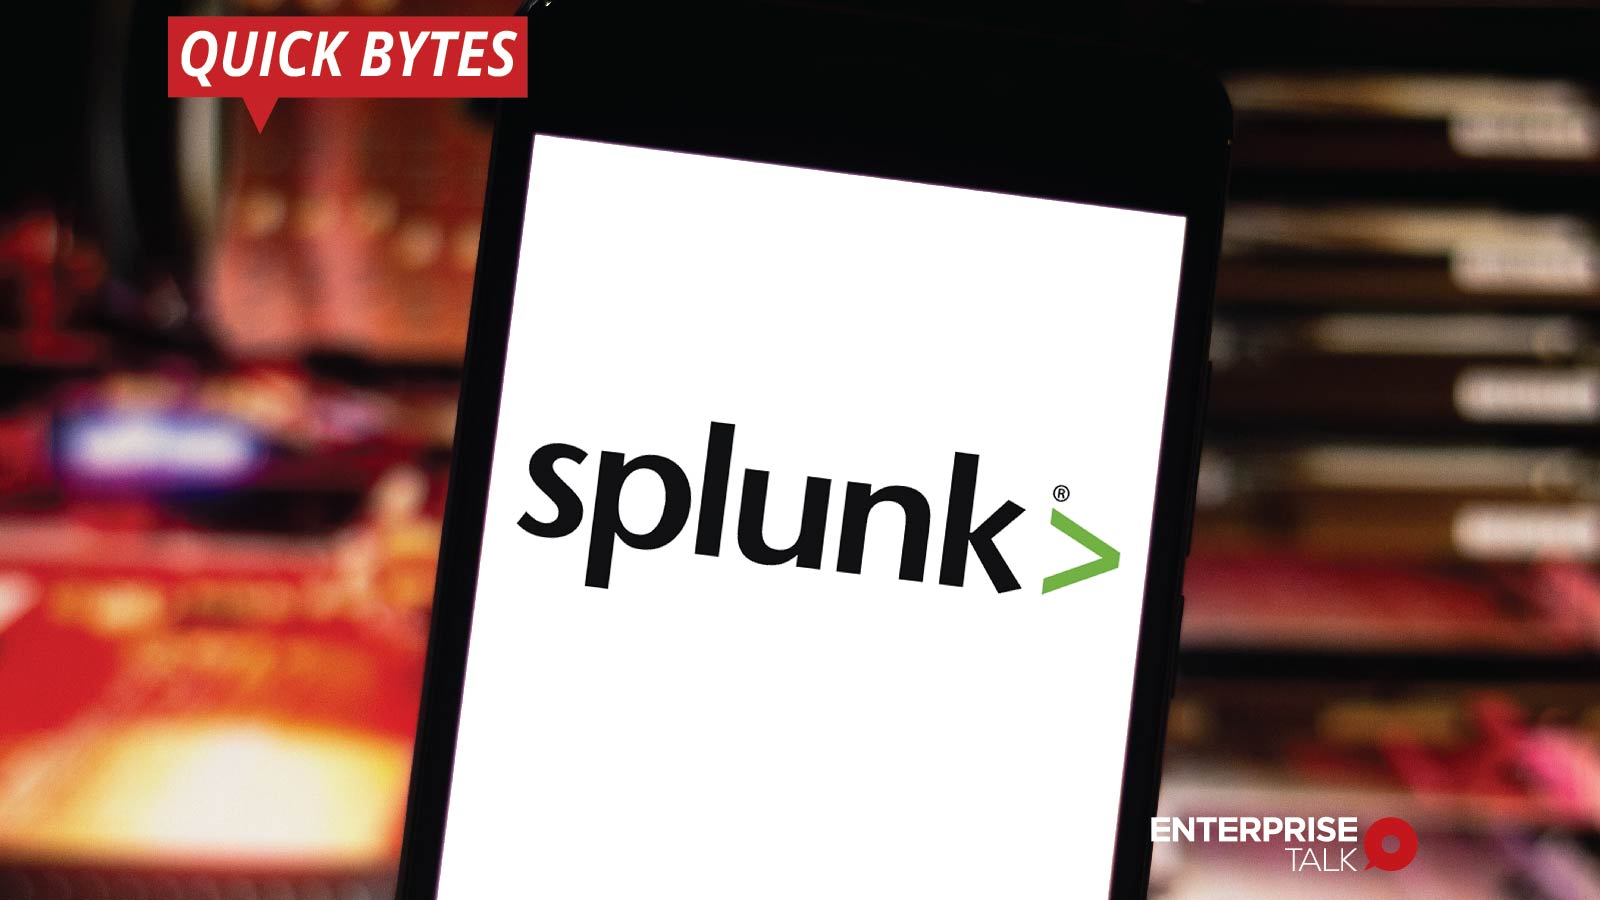 Splunk to Acquire Tech Startup Flowmill